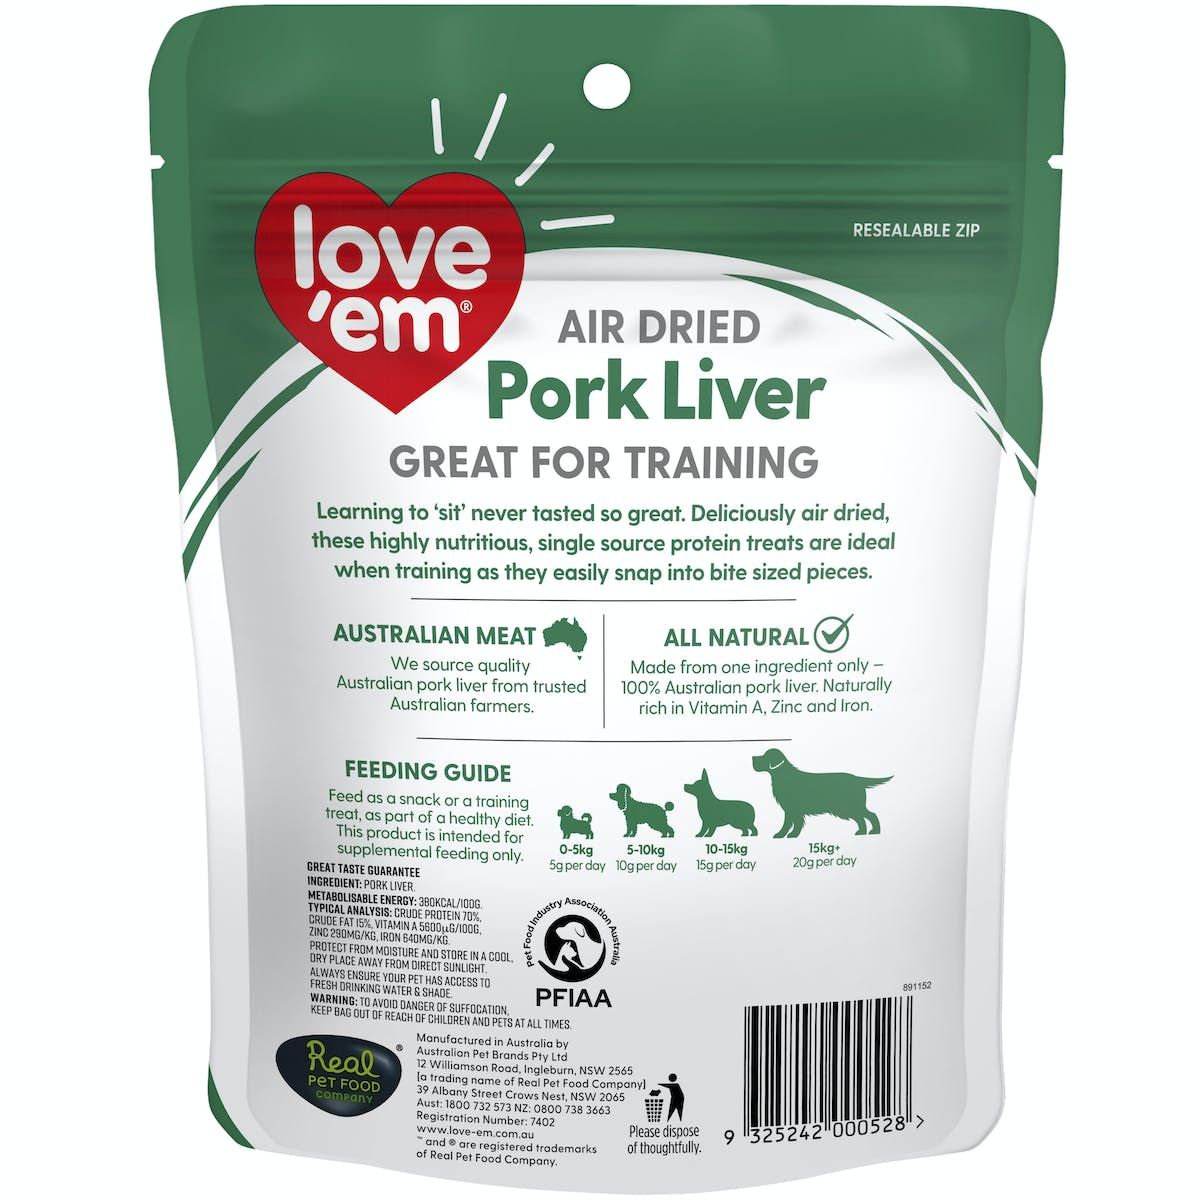 Love'em | Air Dried Pork Liver | Train dog | Front of pack